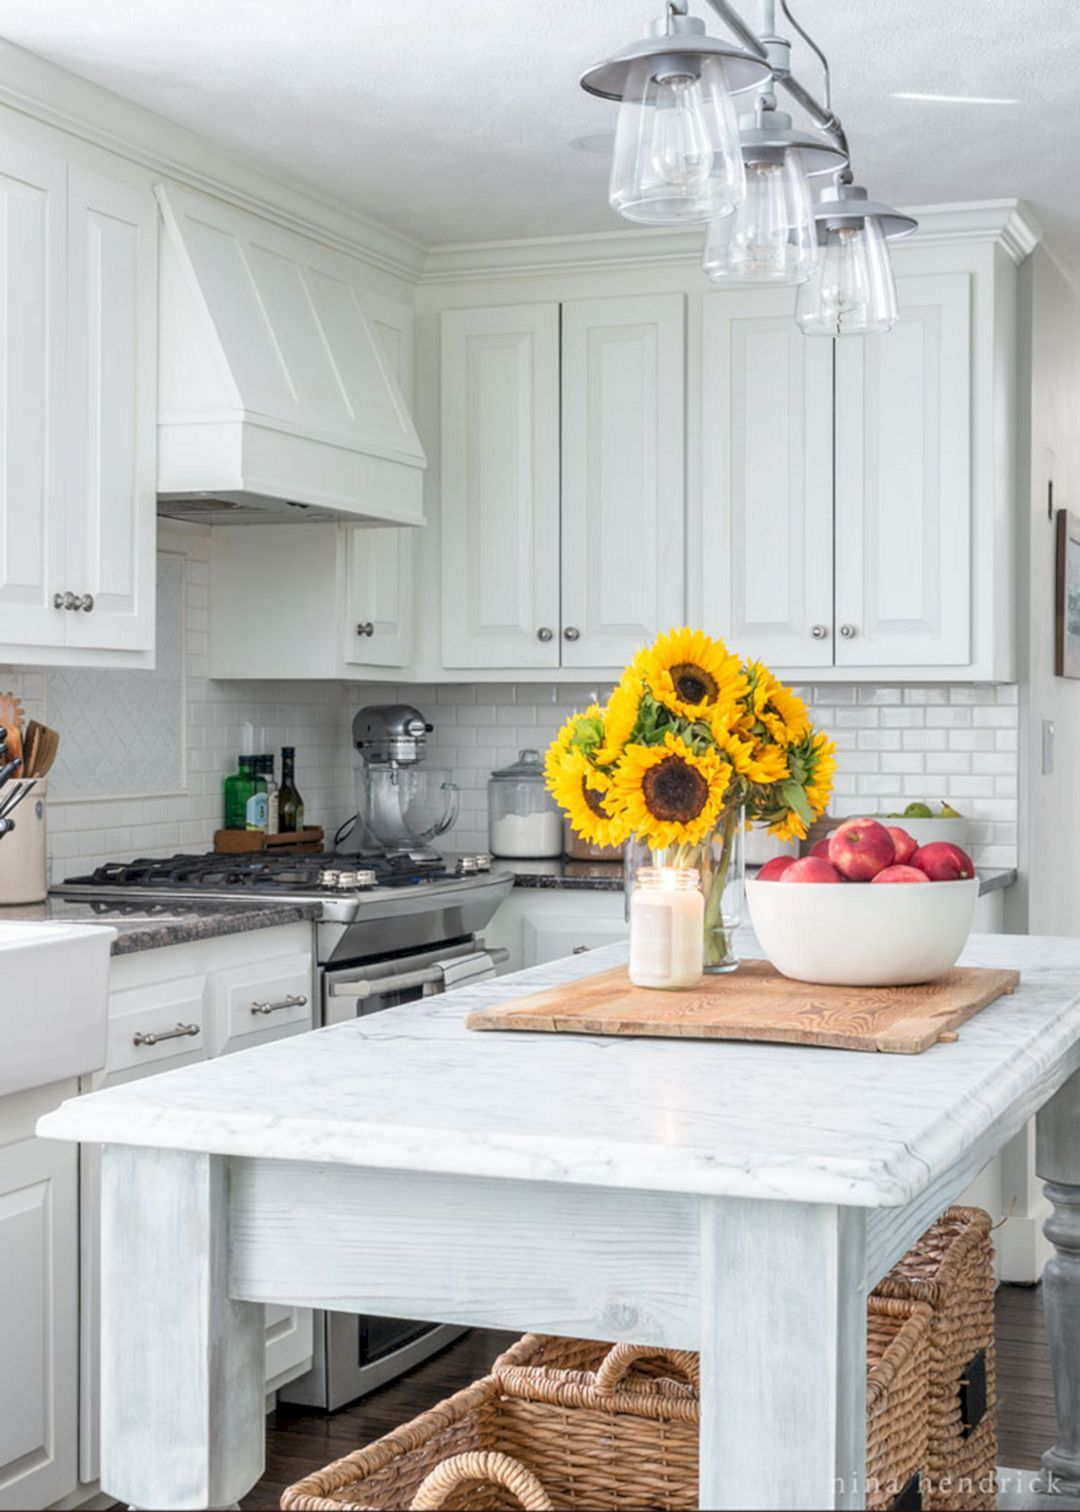 15 Impressive Fall Kitchen Decorating Ideas To Celebrate ...